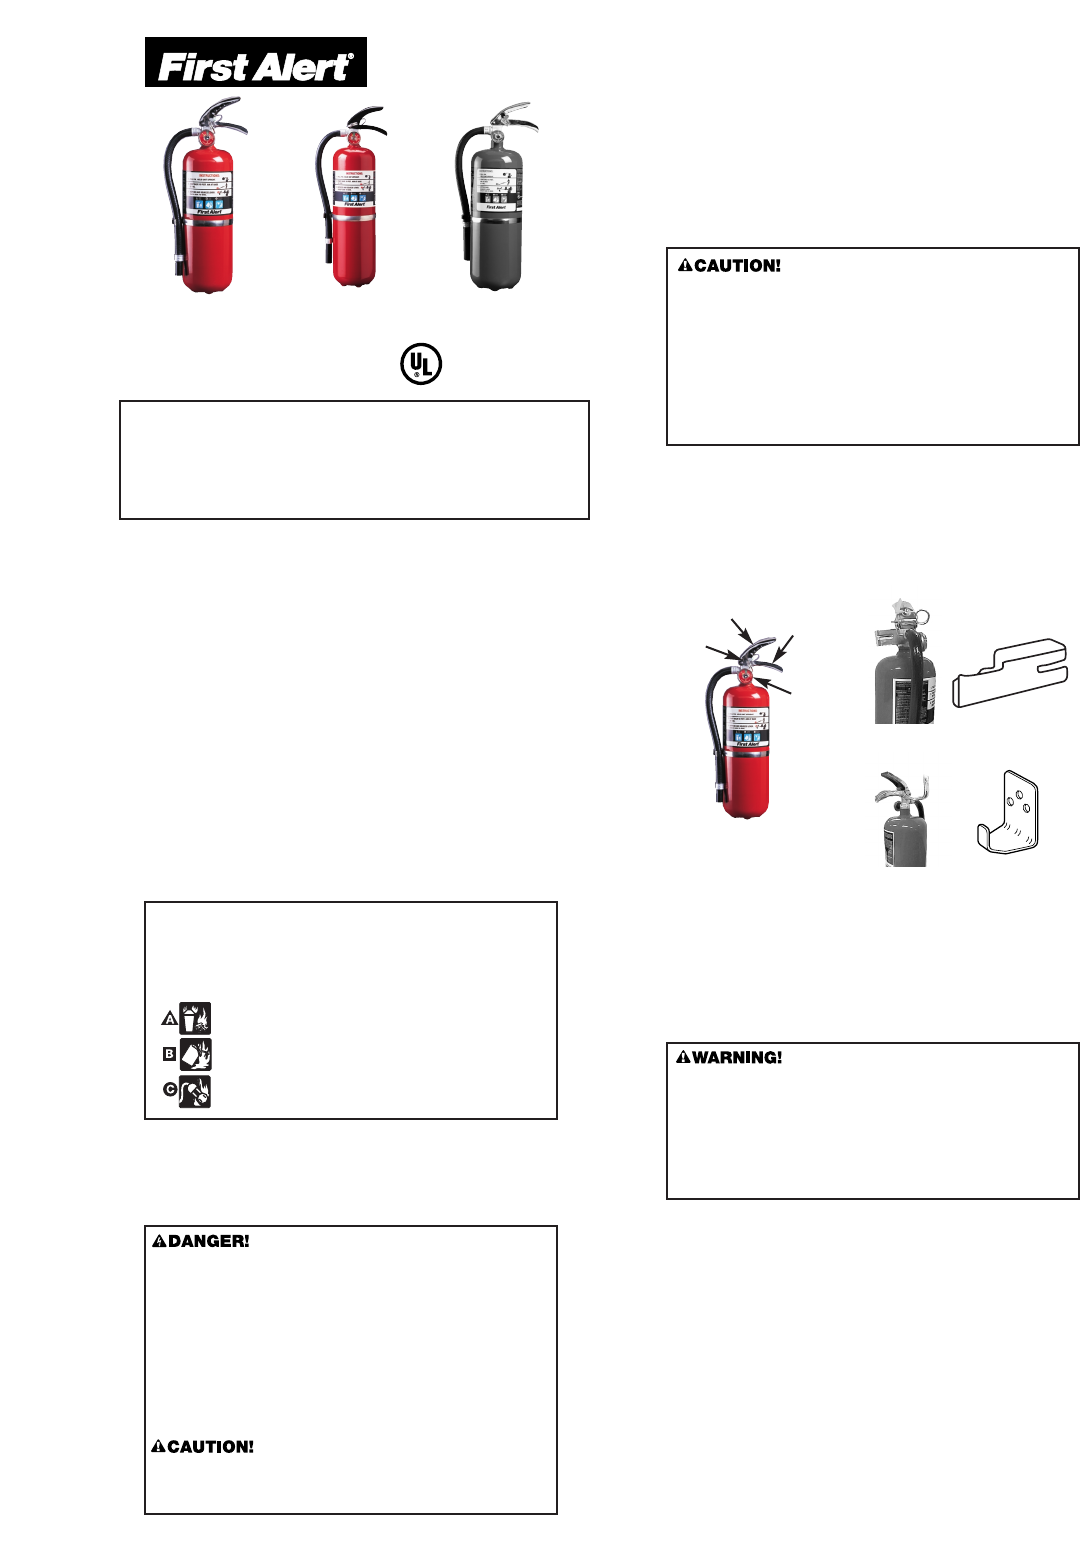 First Alert FE4A60 Fire Extinguisher User Manual